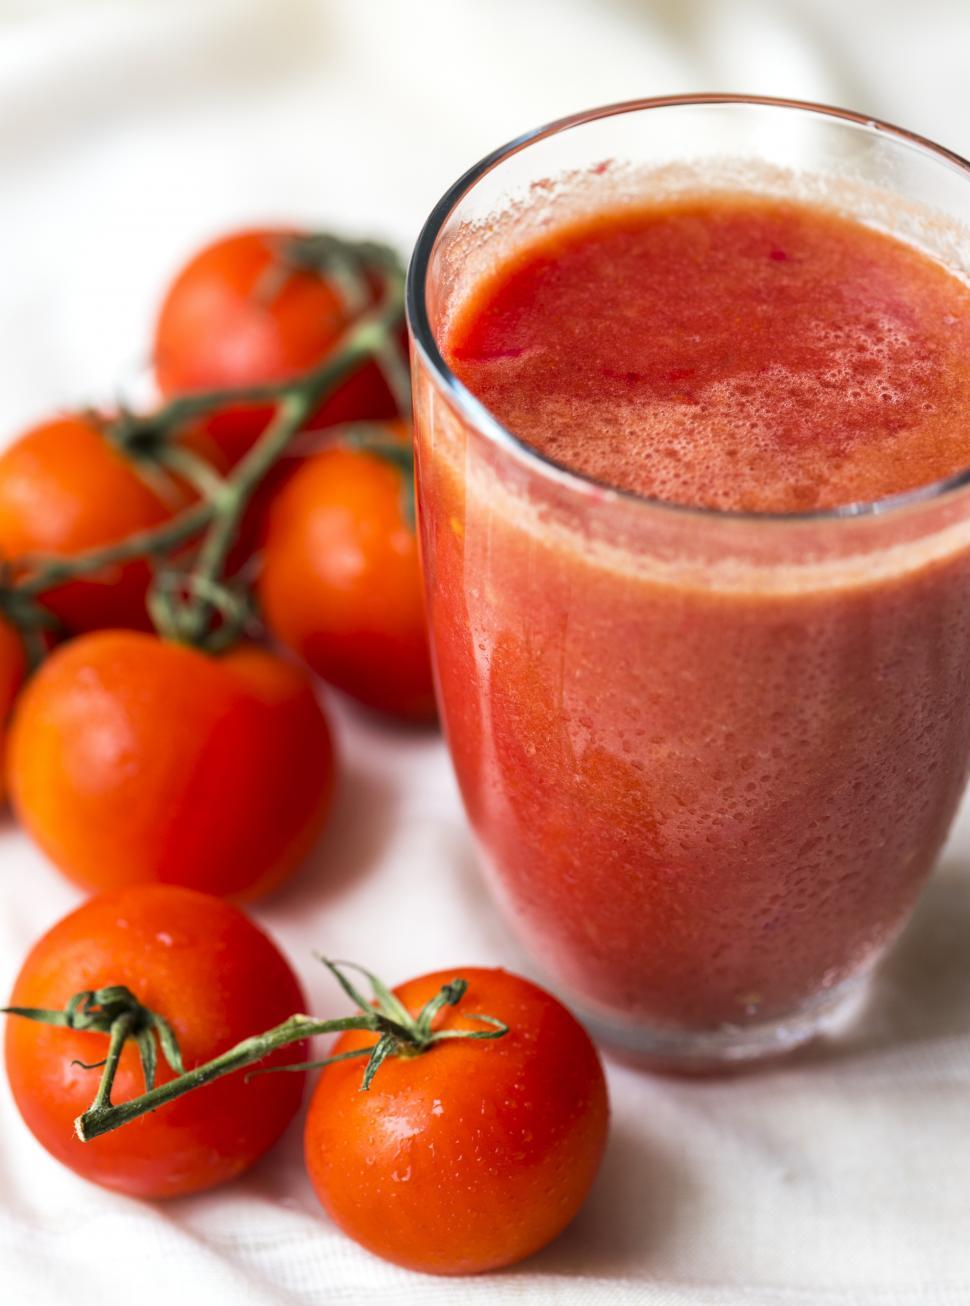 Download Free Stock Photo of Close up of a glass of tomato juice with whole tomatoes